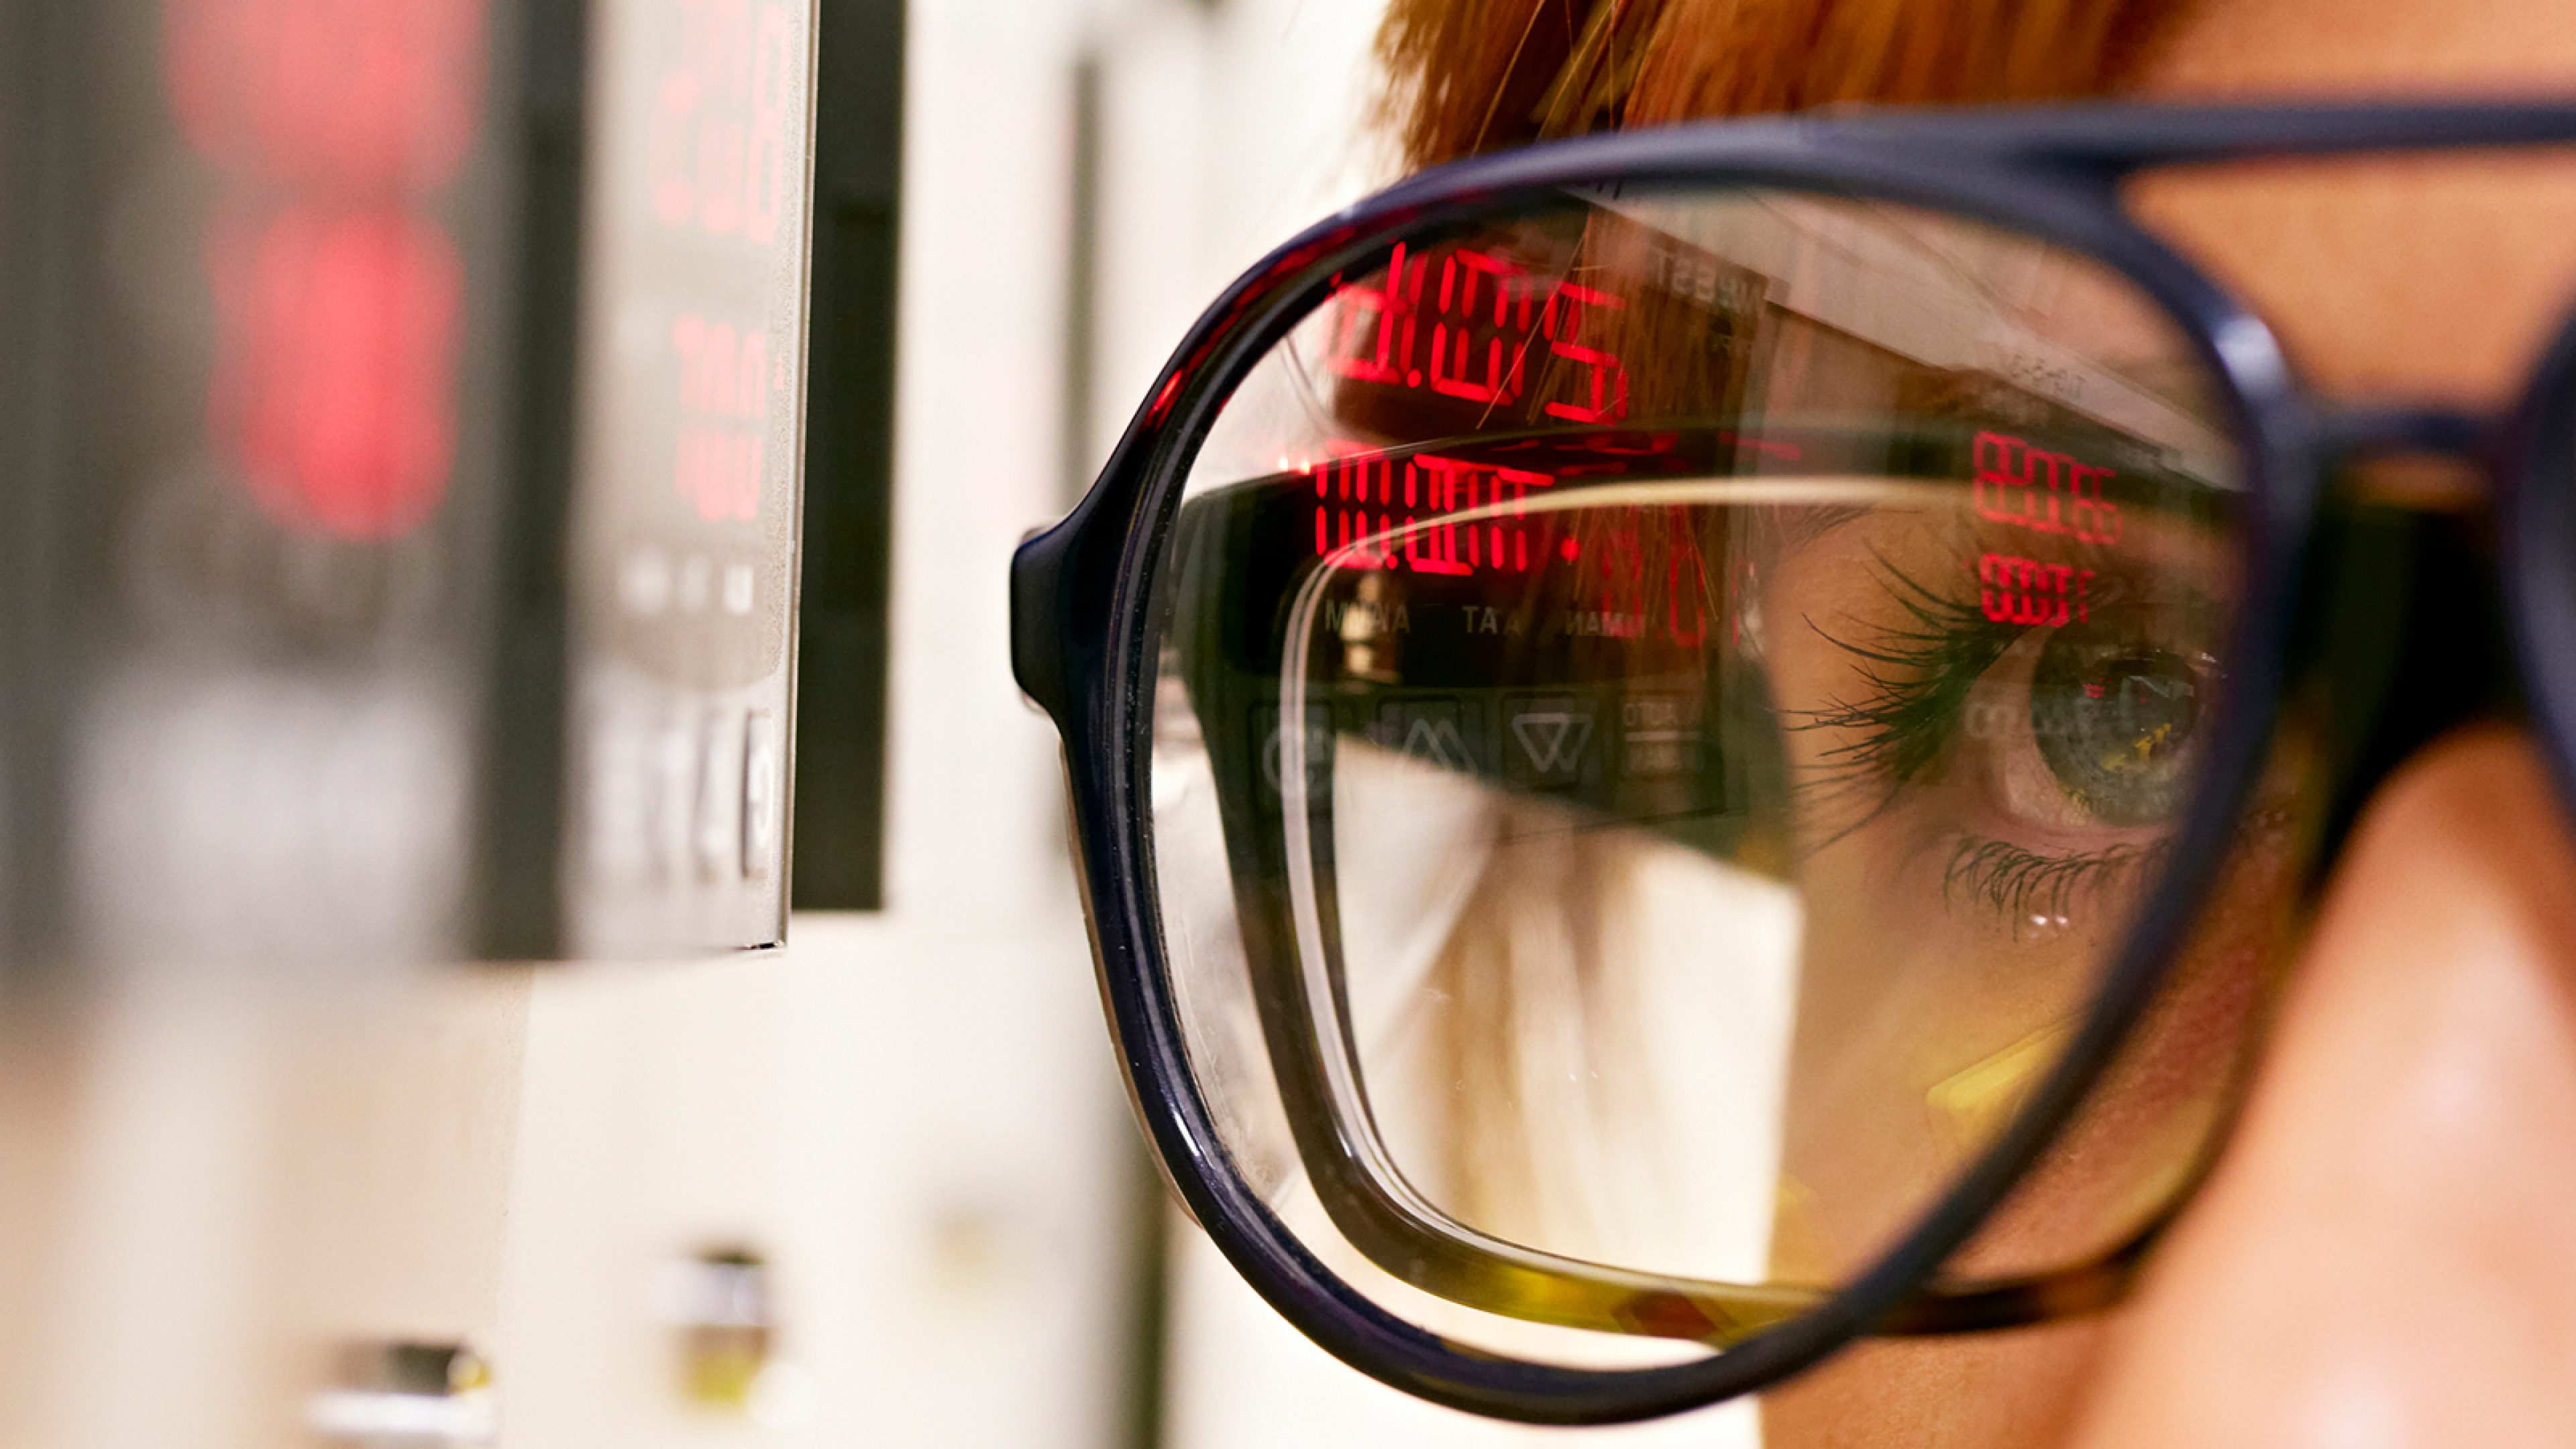 Digital readings reflected in glasses